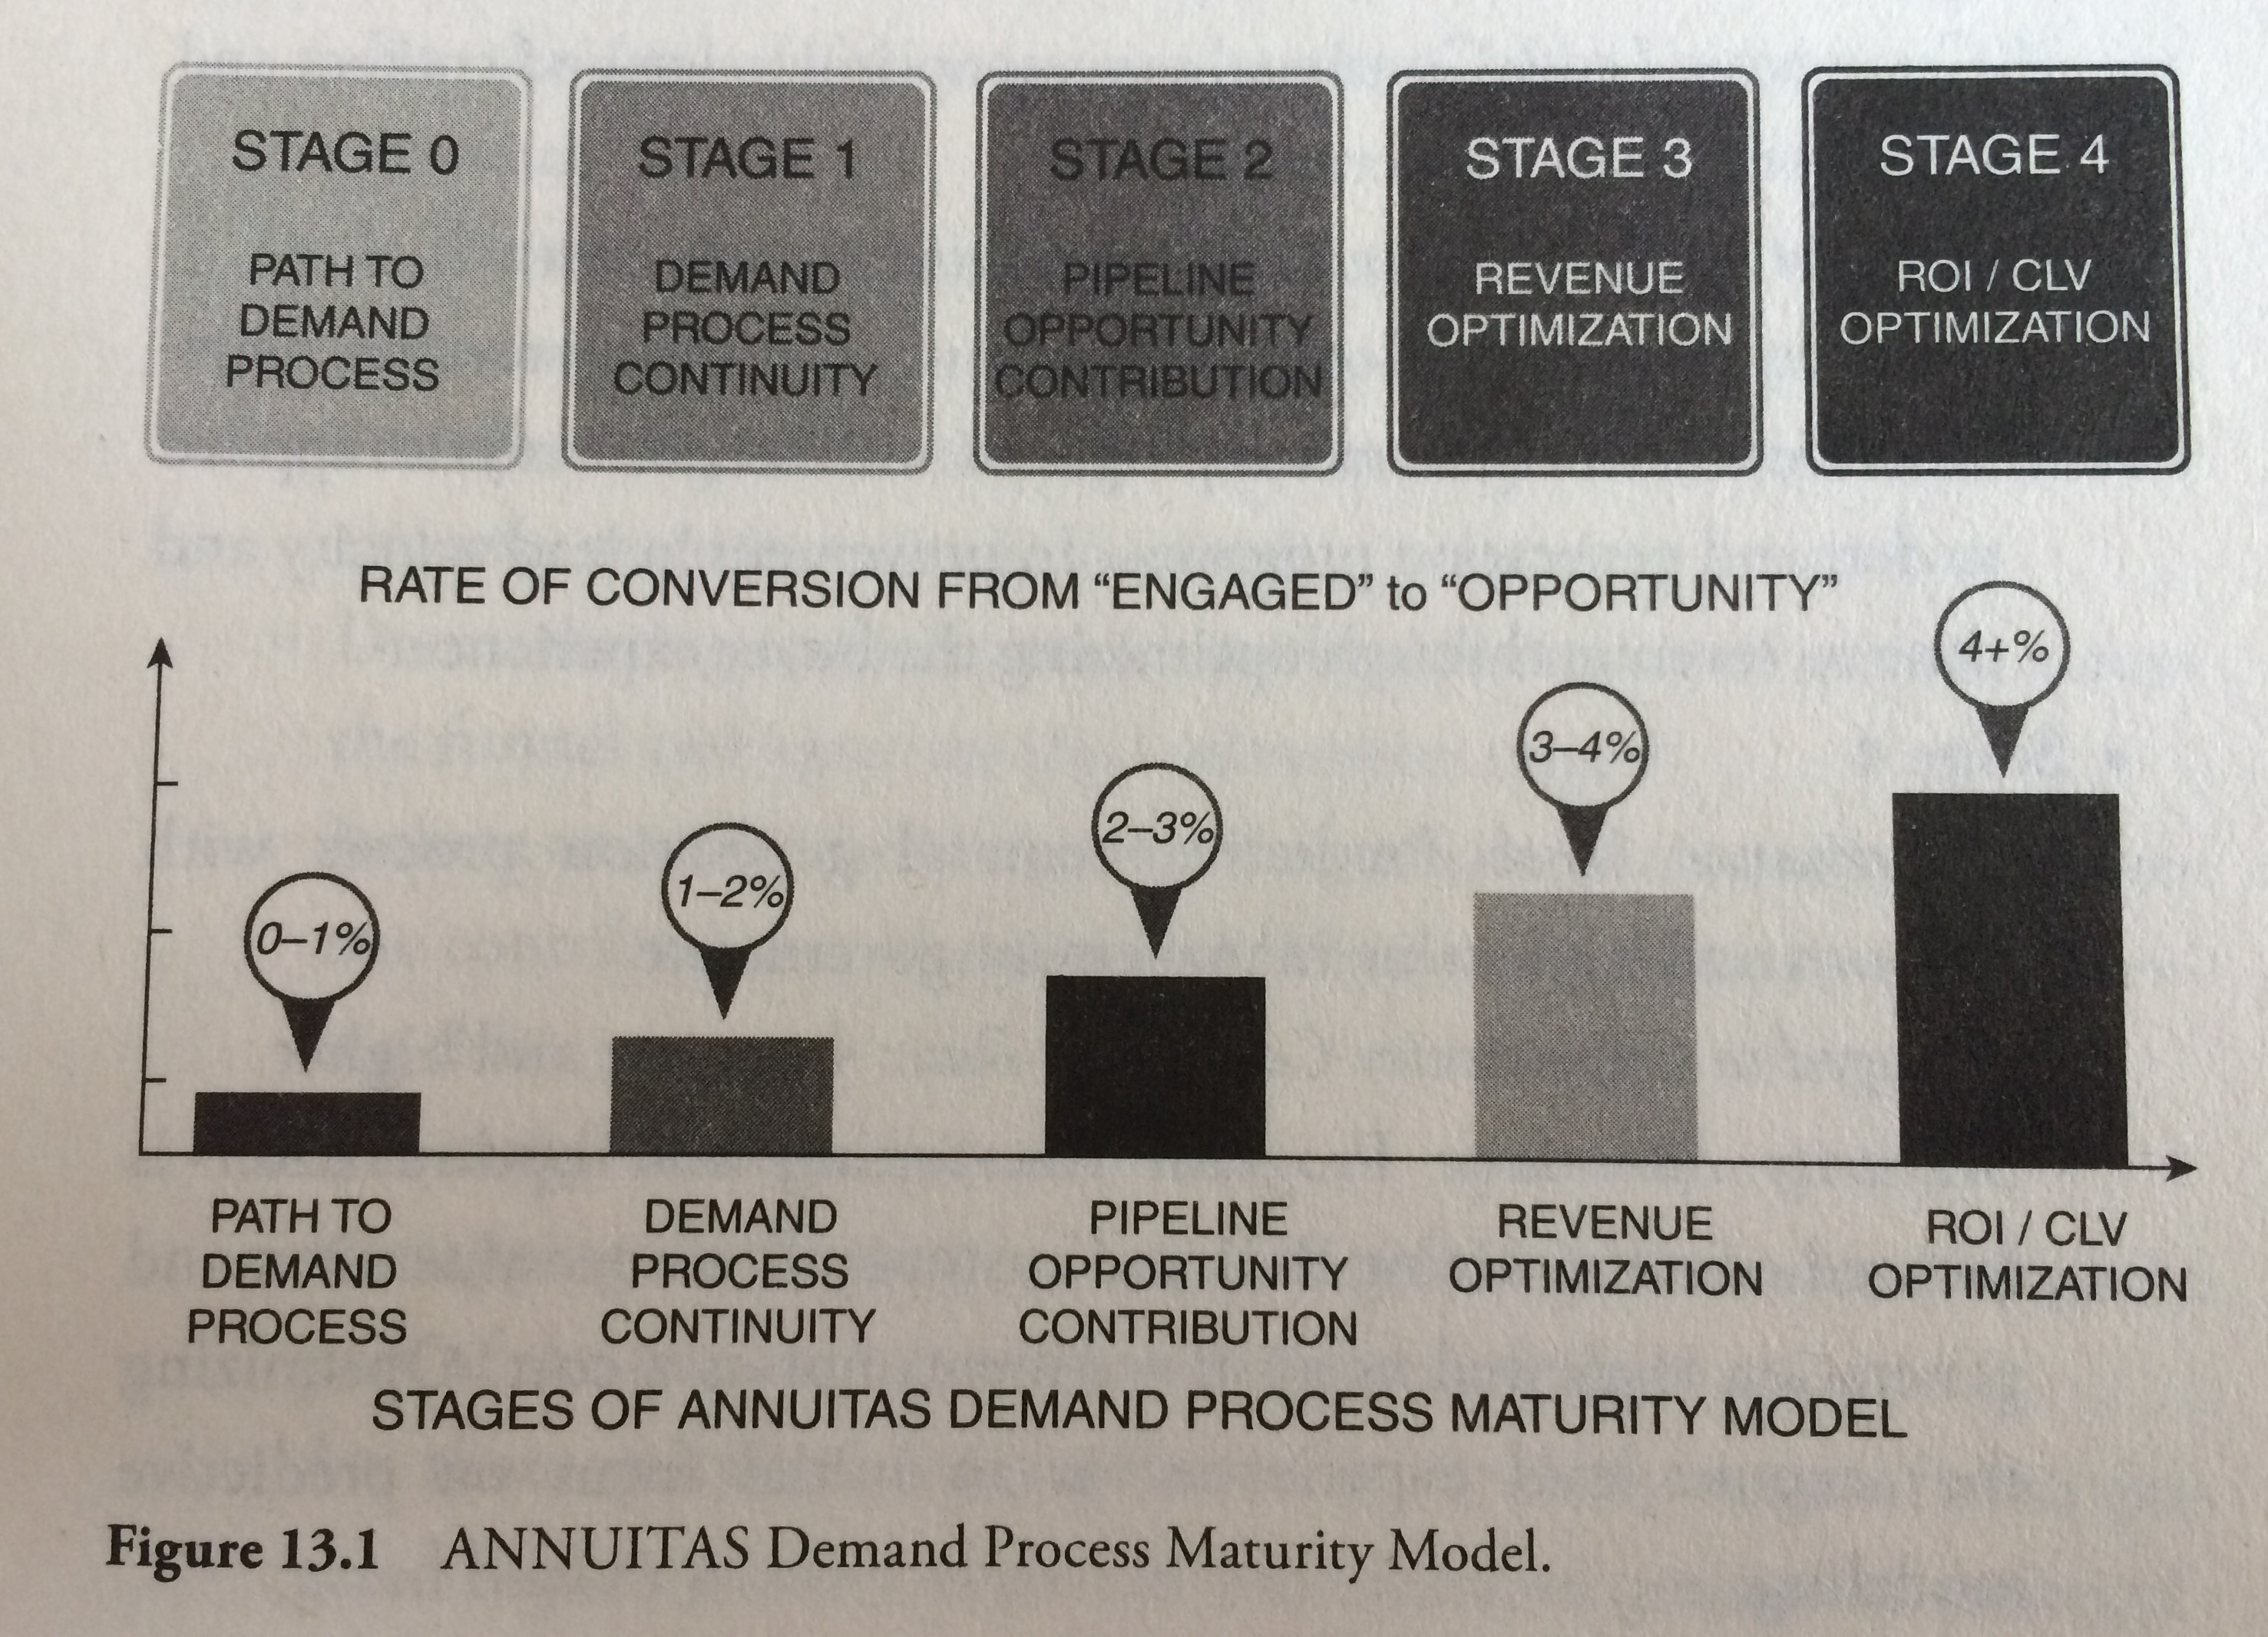 ANNUITAS Demand Process Maturity Model